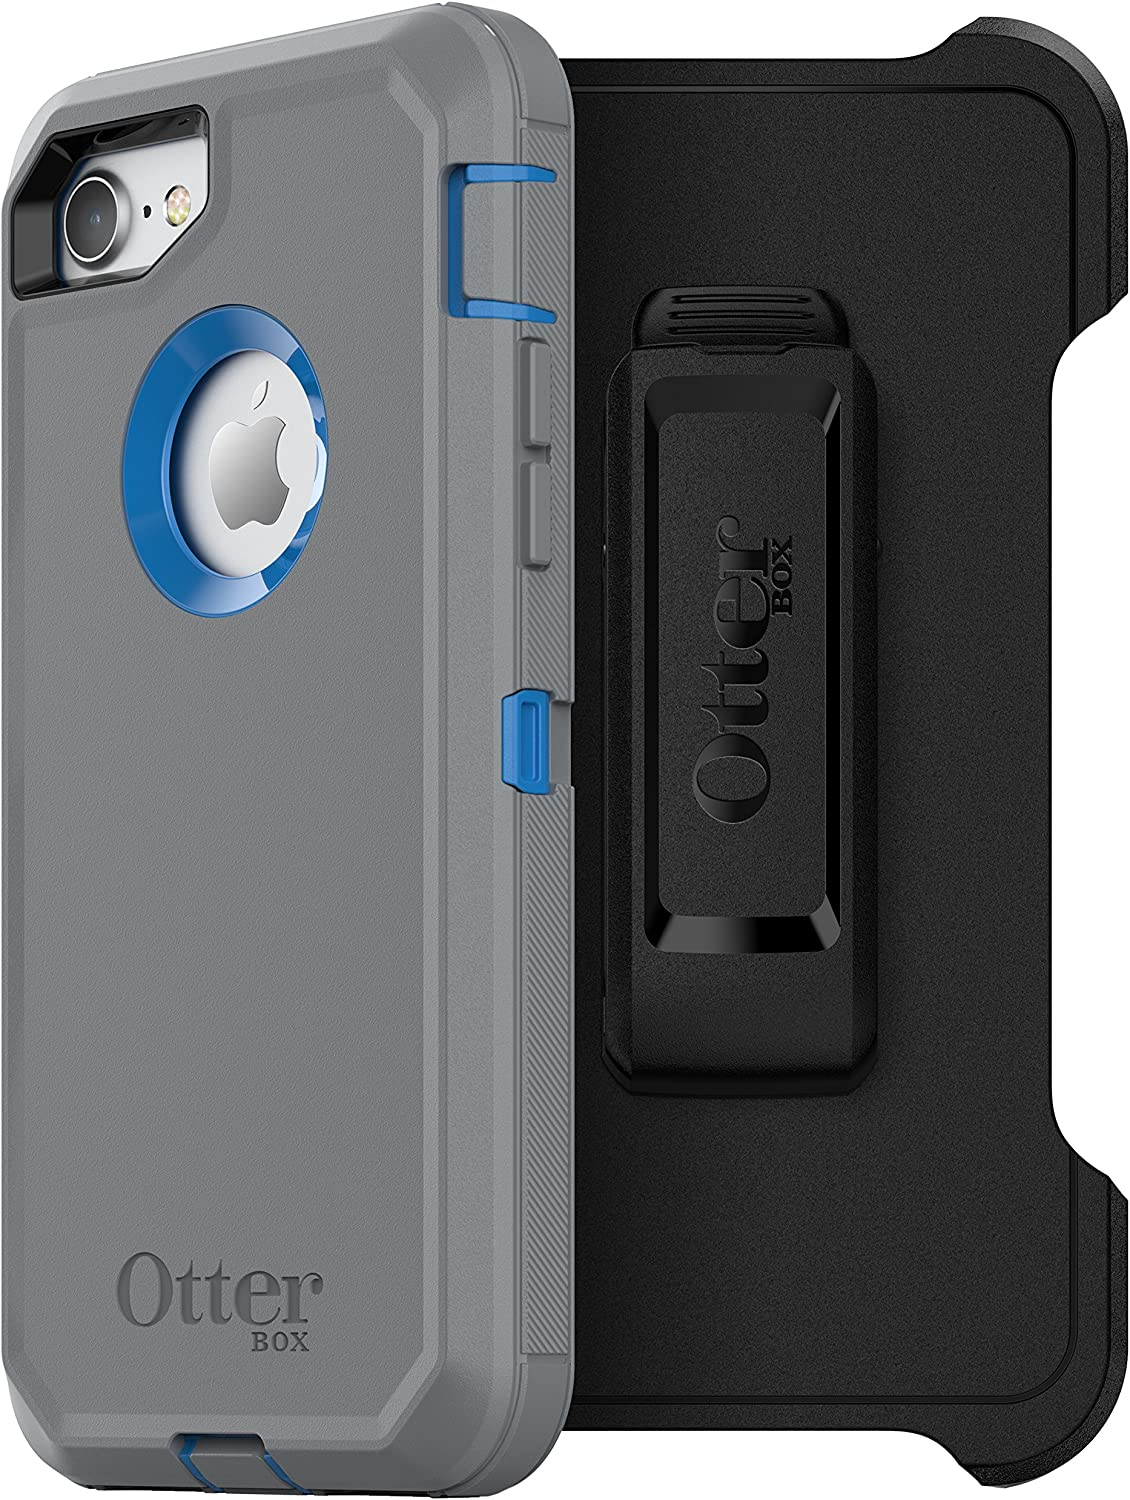 OtterBox DEFENDER SERIES Case for iPhone SE (2nd gen - 2020) and iPhone 8/7 (NOT PLUS) - Retail Packaging - MARATHONER (COWABUNGA BLUE/GUNMETAL GREY), Single, Model Number: 77-55148